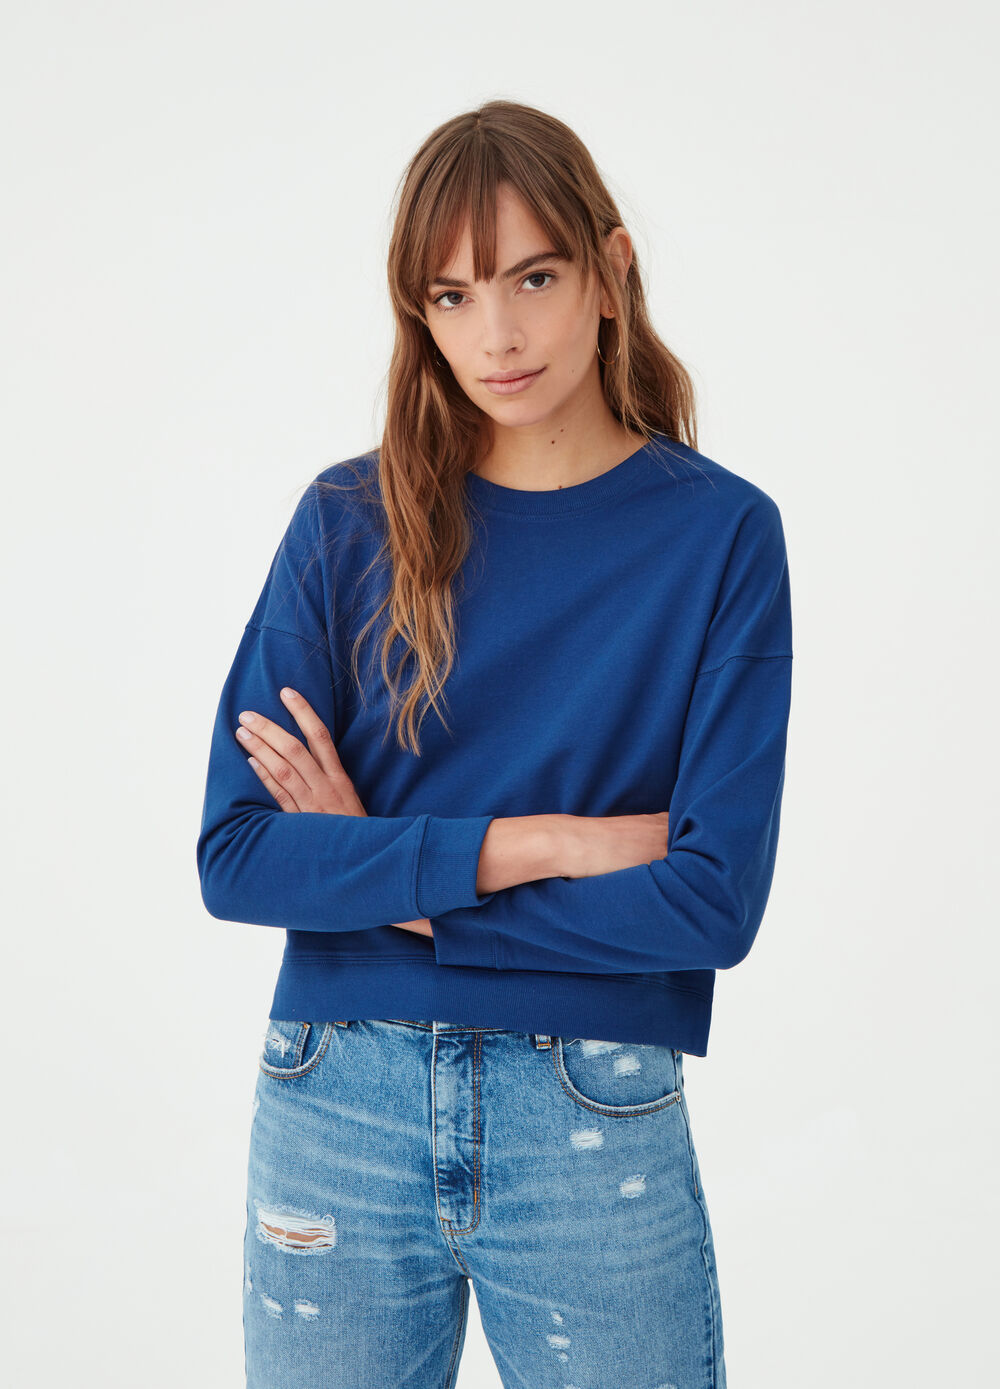 BCI sweatshirt with drop shoulder sleeves